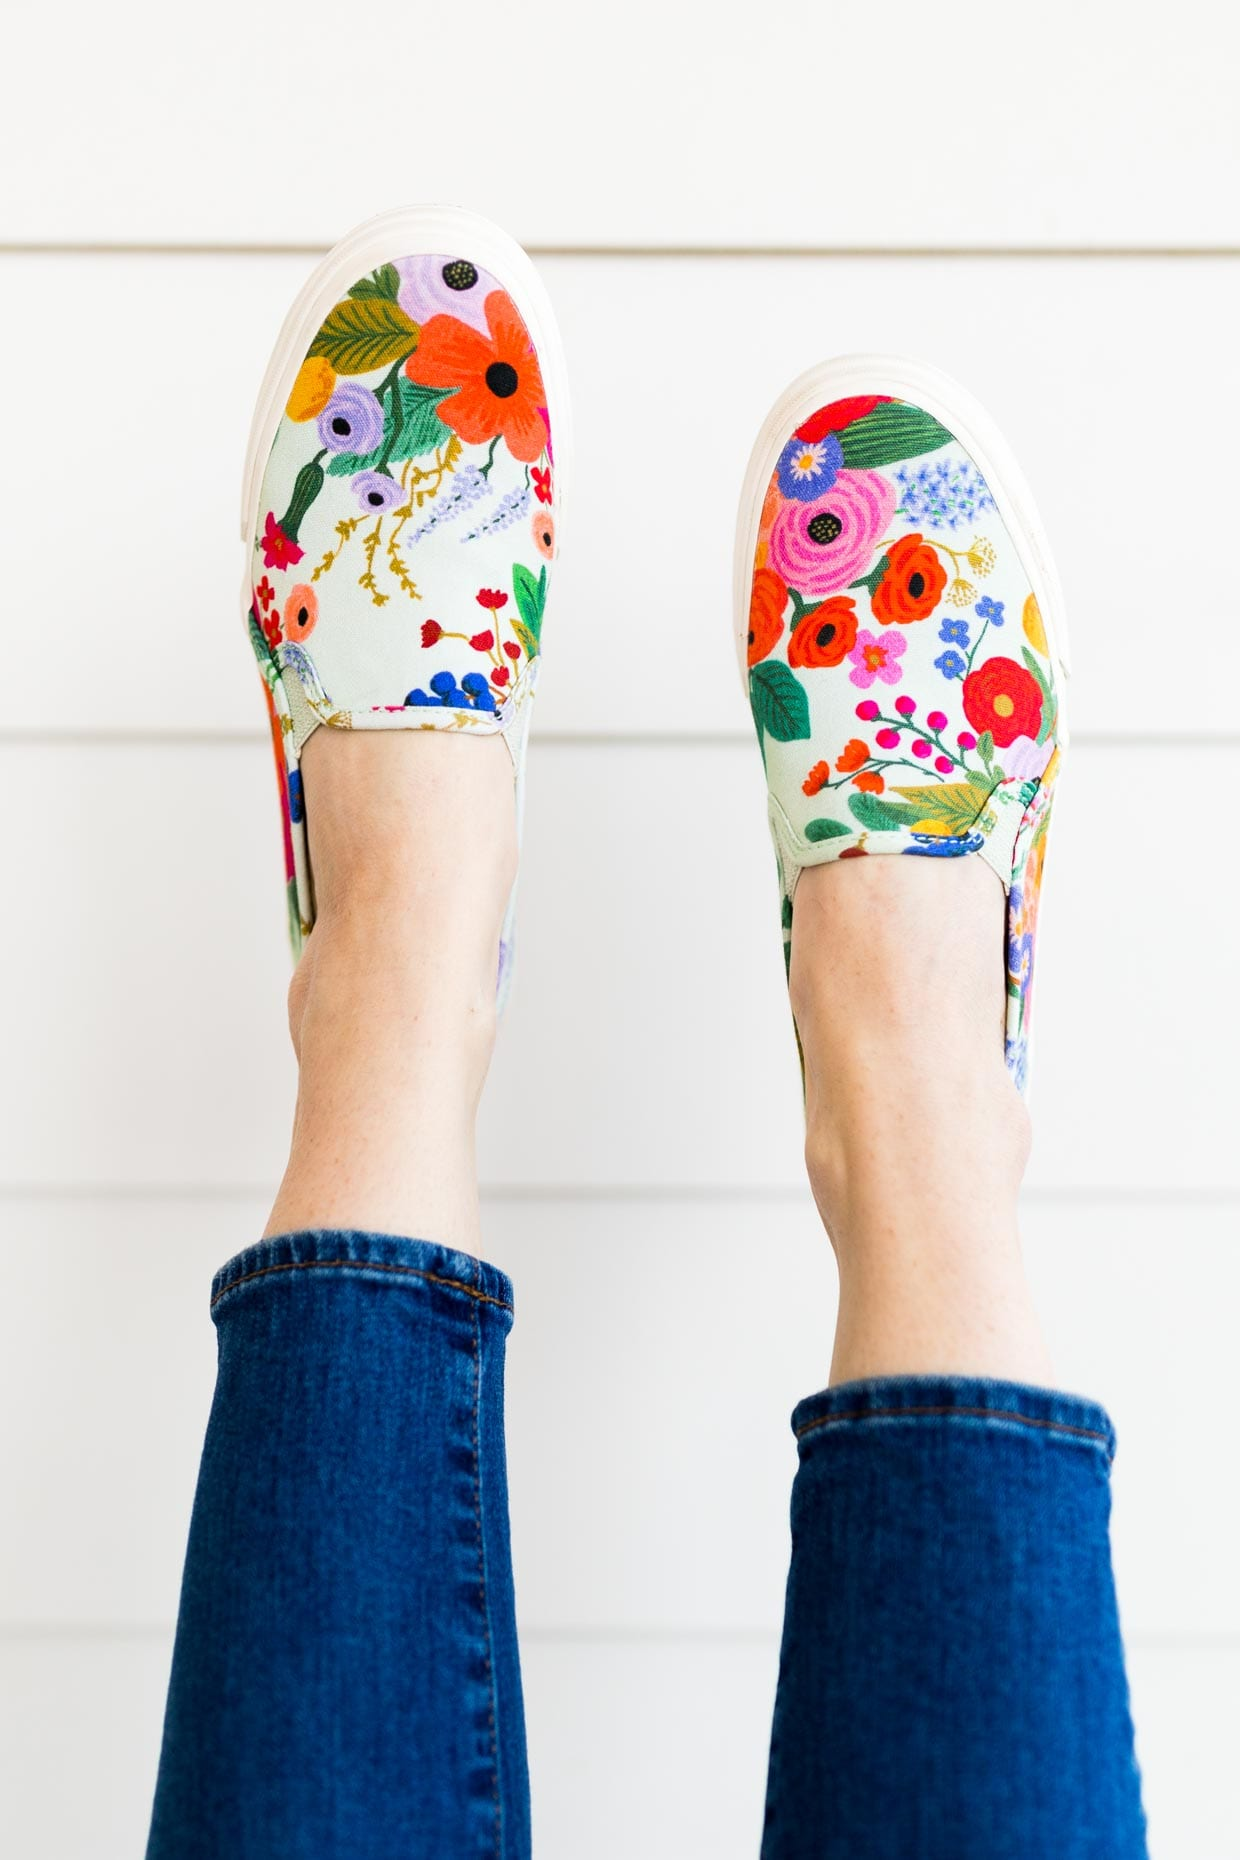 a437bce55b59 Keds x Rifle Paper Co - Floral Sneaker For Spring - Poor Little It Girl